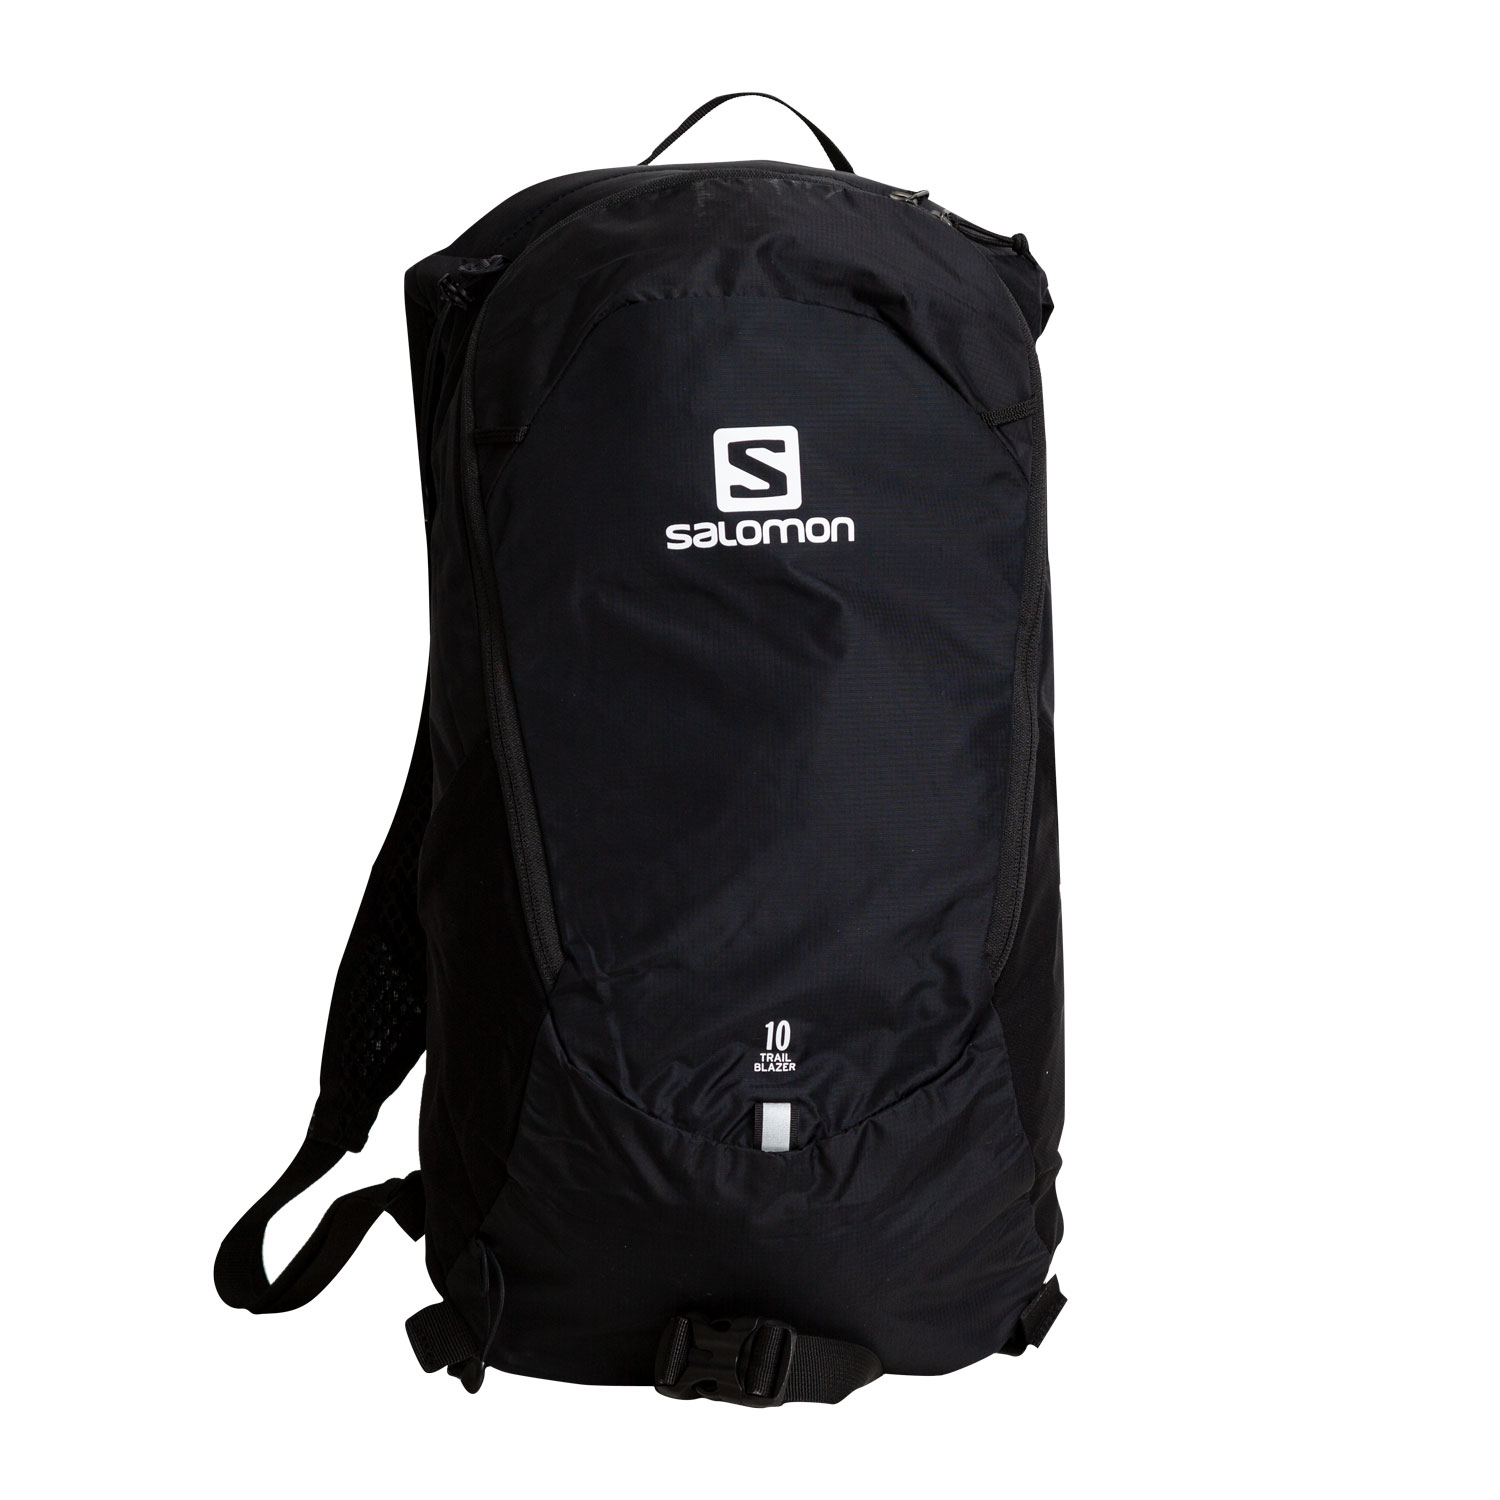 Salomon Trailblazer 10 Backpack - Black